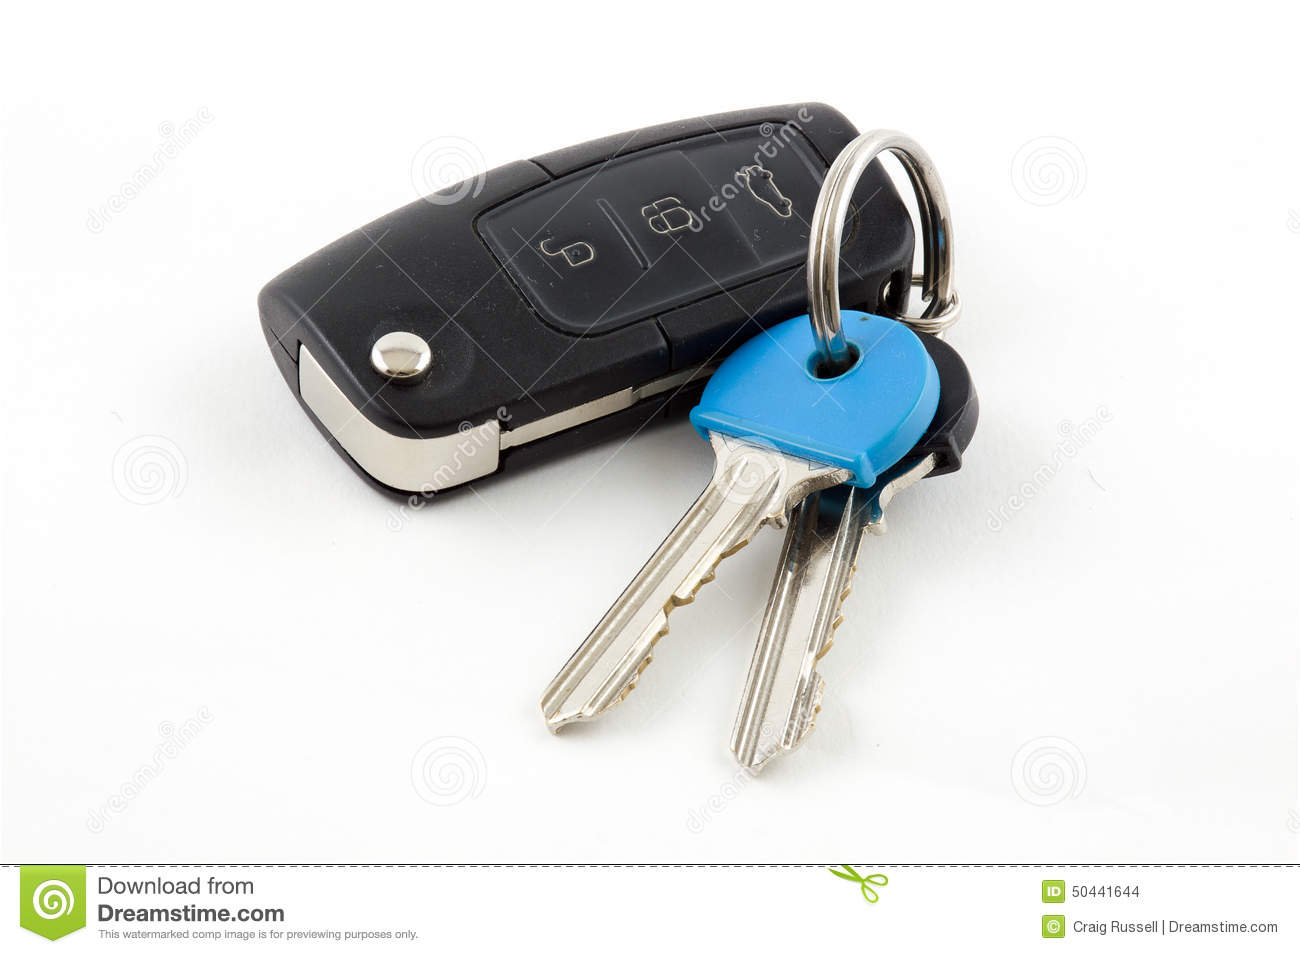 186 car key fob stock images are available royalty-free.